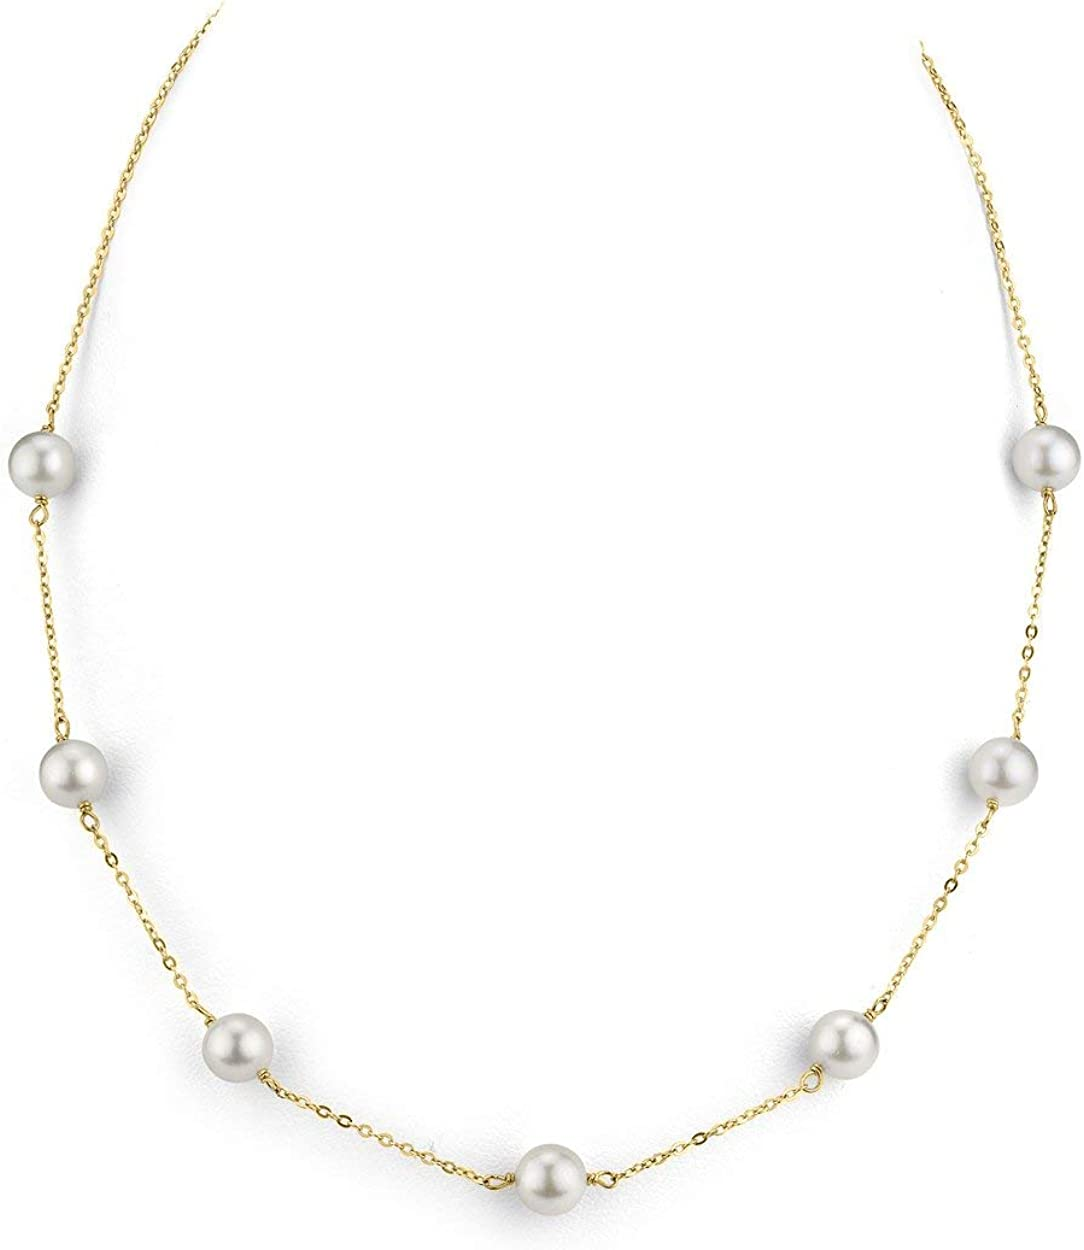 THE PEARL SOURCE 14K Gold AAA Quality Round Genuine White Japanese Akoya Saltwater Cultured Pearl Tincup Necklace for Women